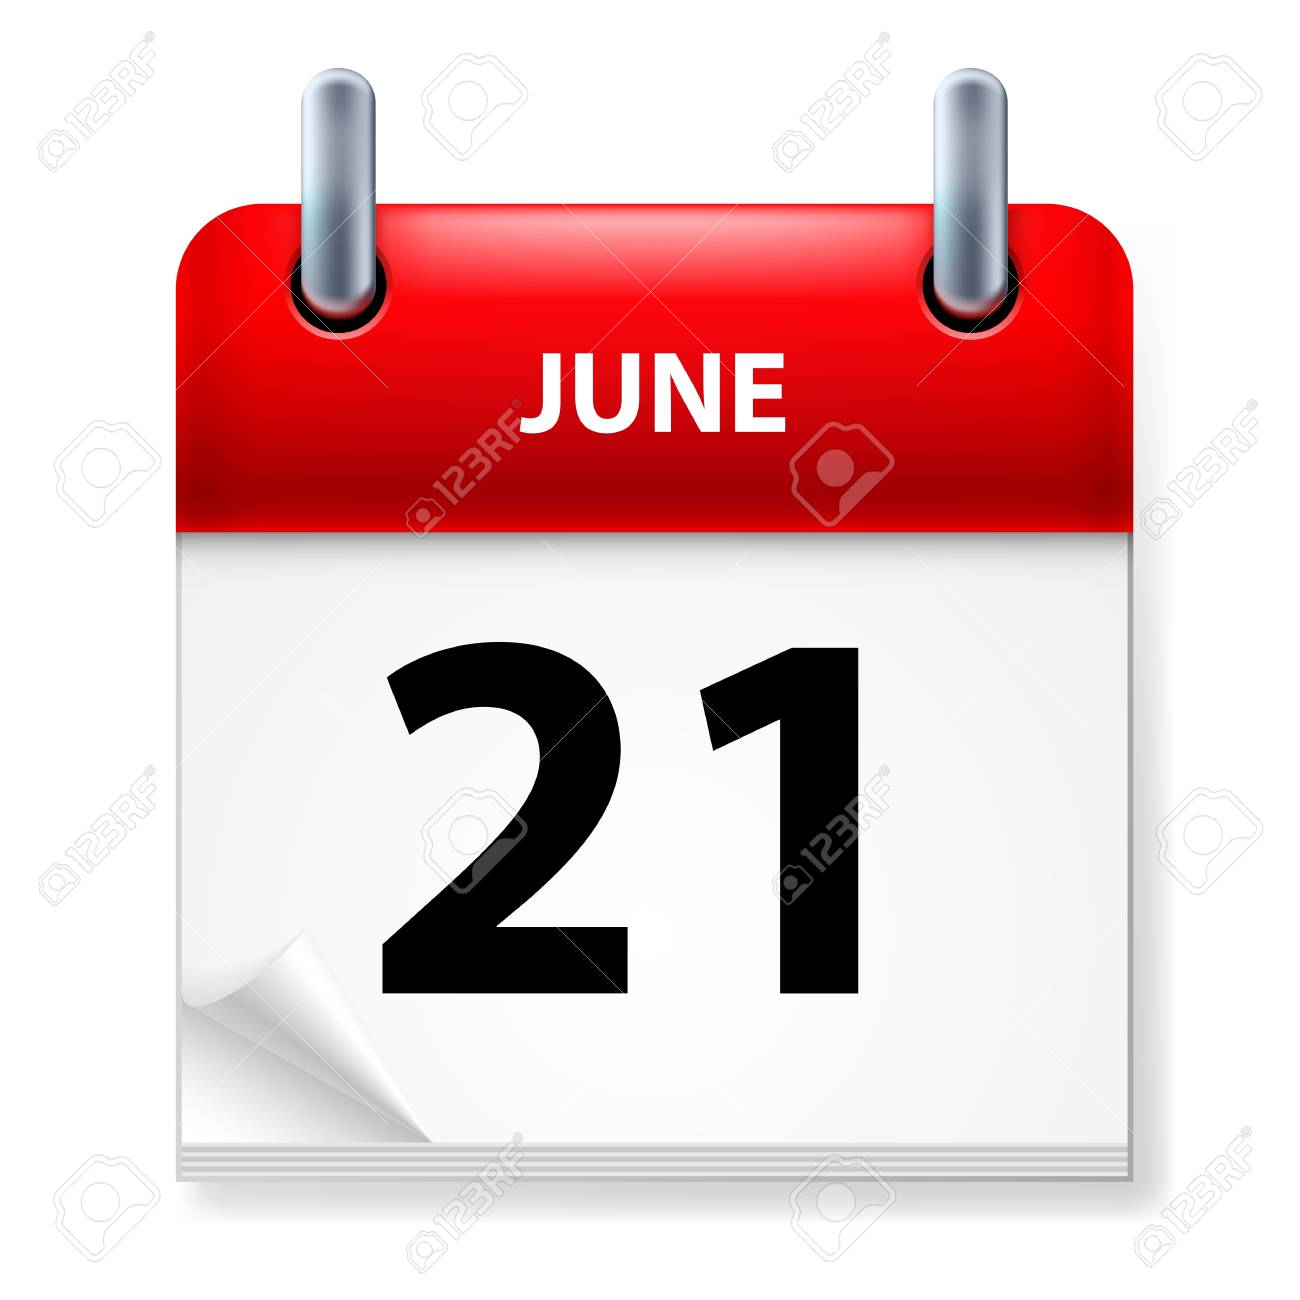 Twenty-first June in Calendar icon on white background Stock Vector - 14495233